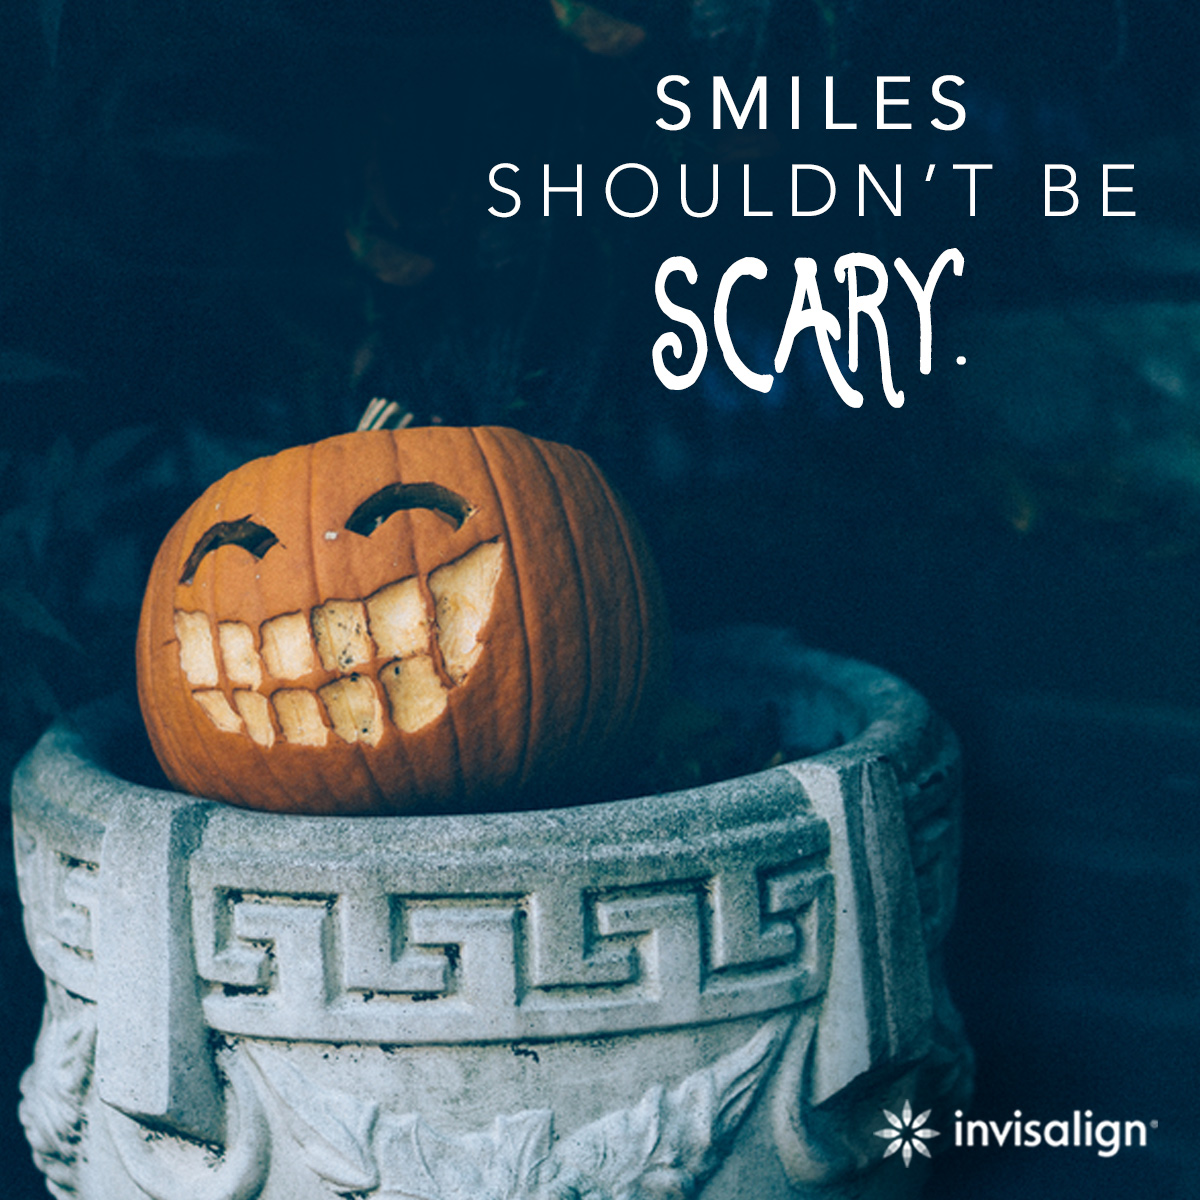 Invisalign: Smiles shouldn't be scary